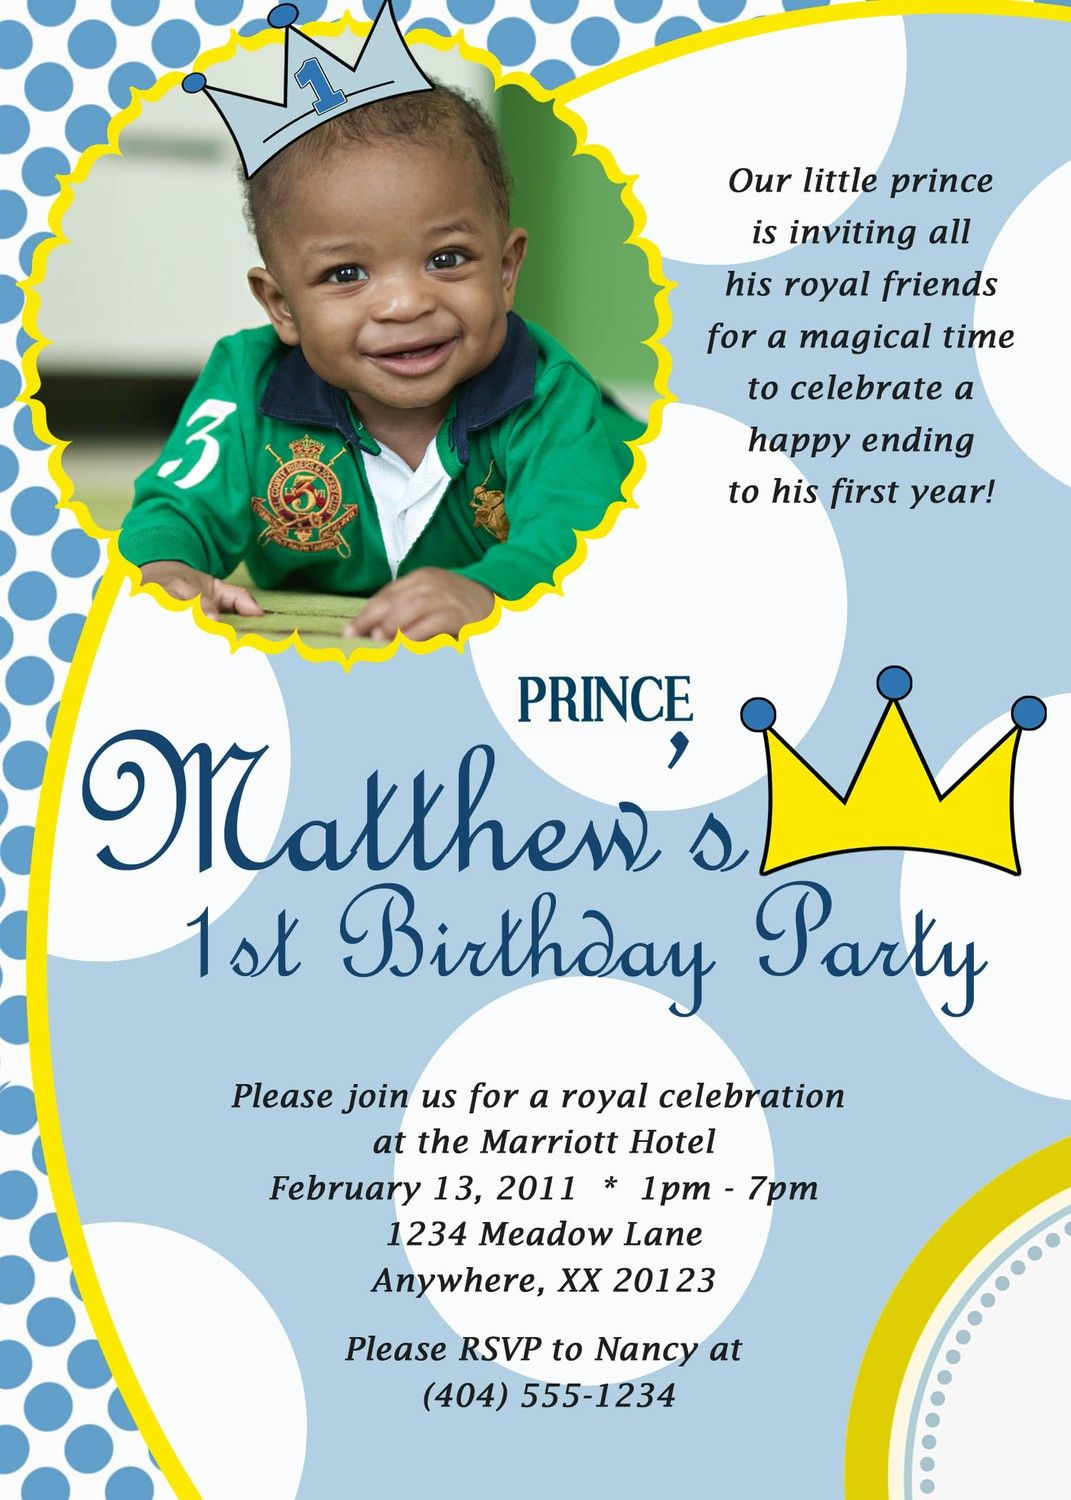 Little Prince Custom Digital Photo Birthday Party Invitation – Prince 1st Birthday Invitations